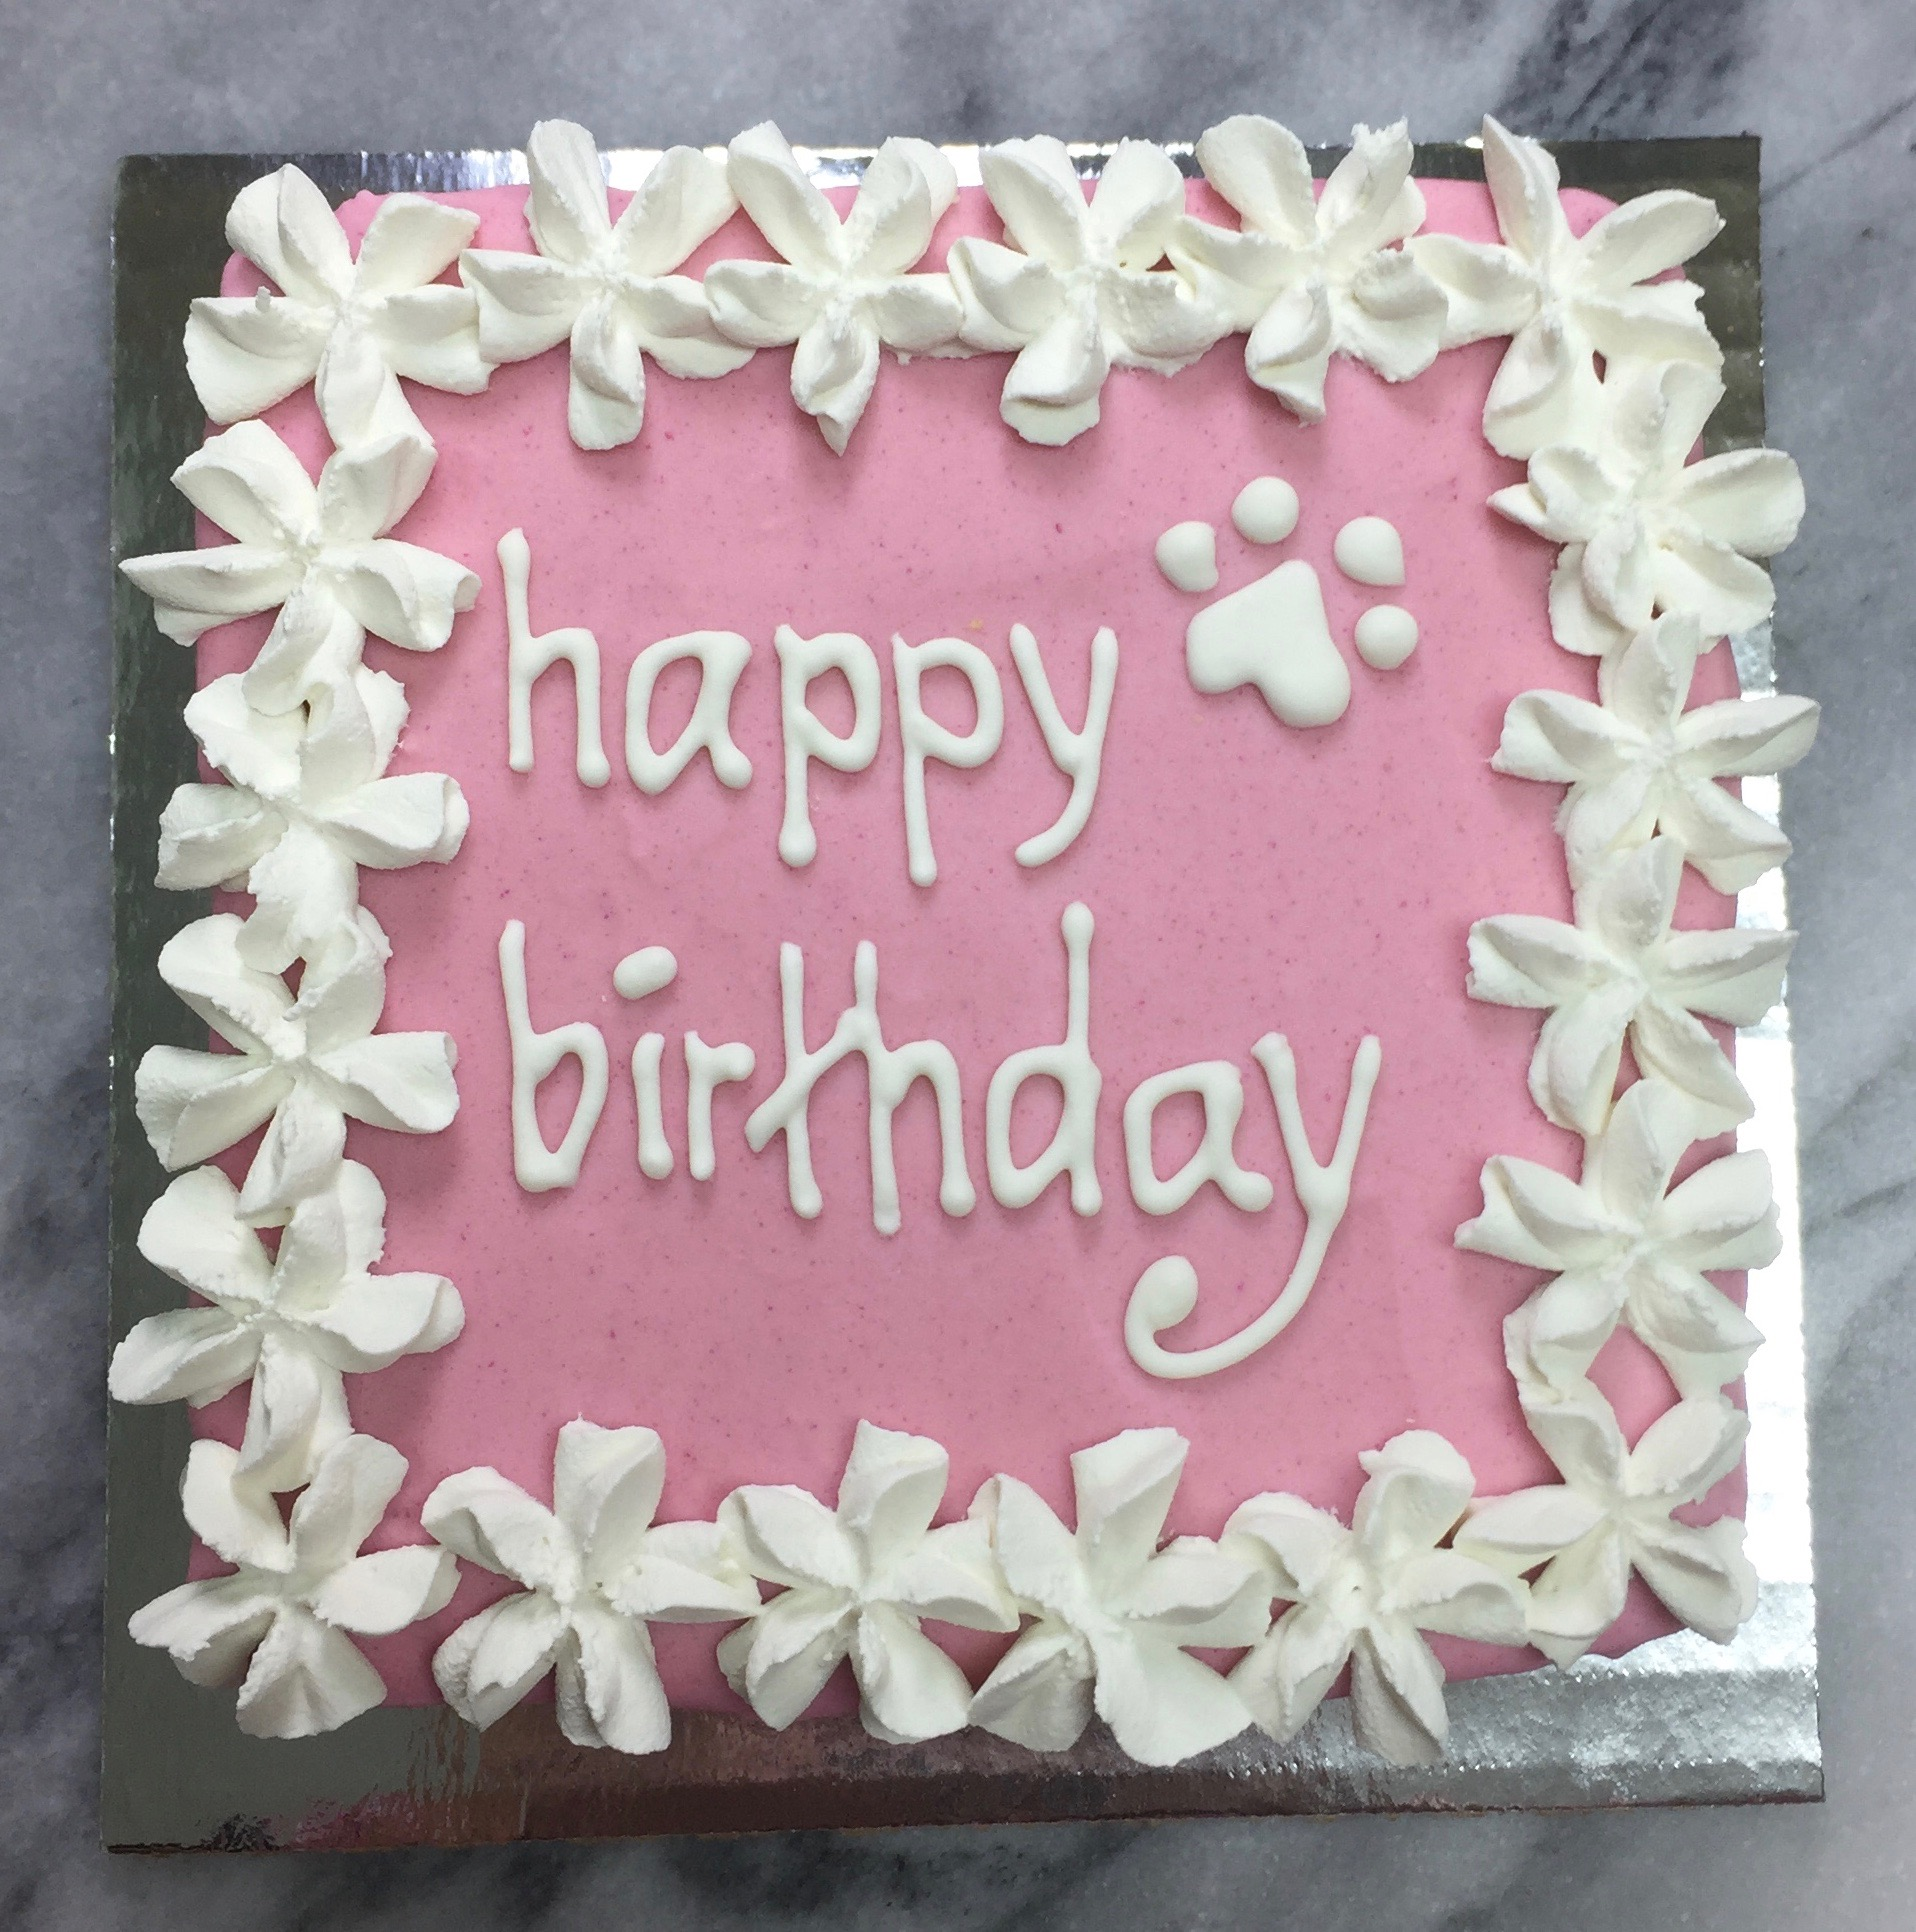 Pink with white frosting